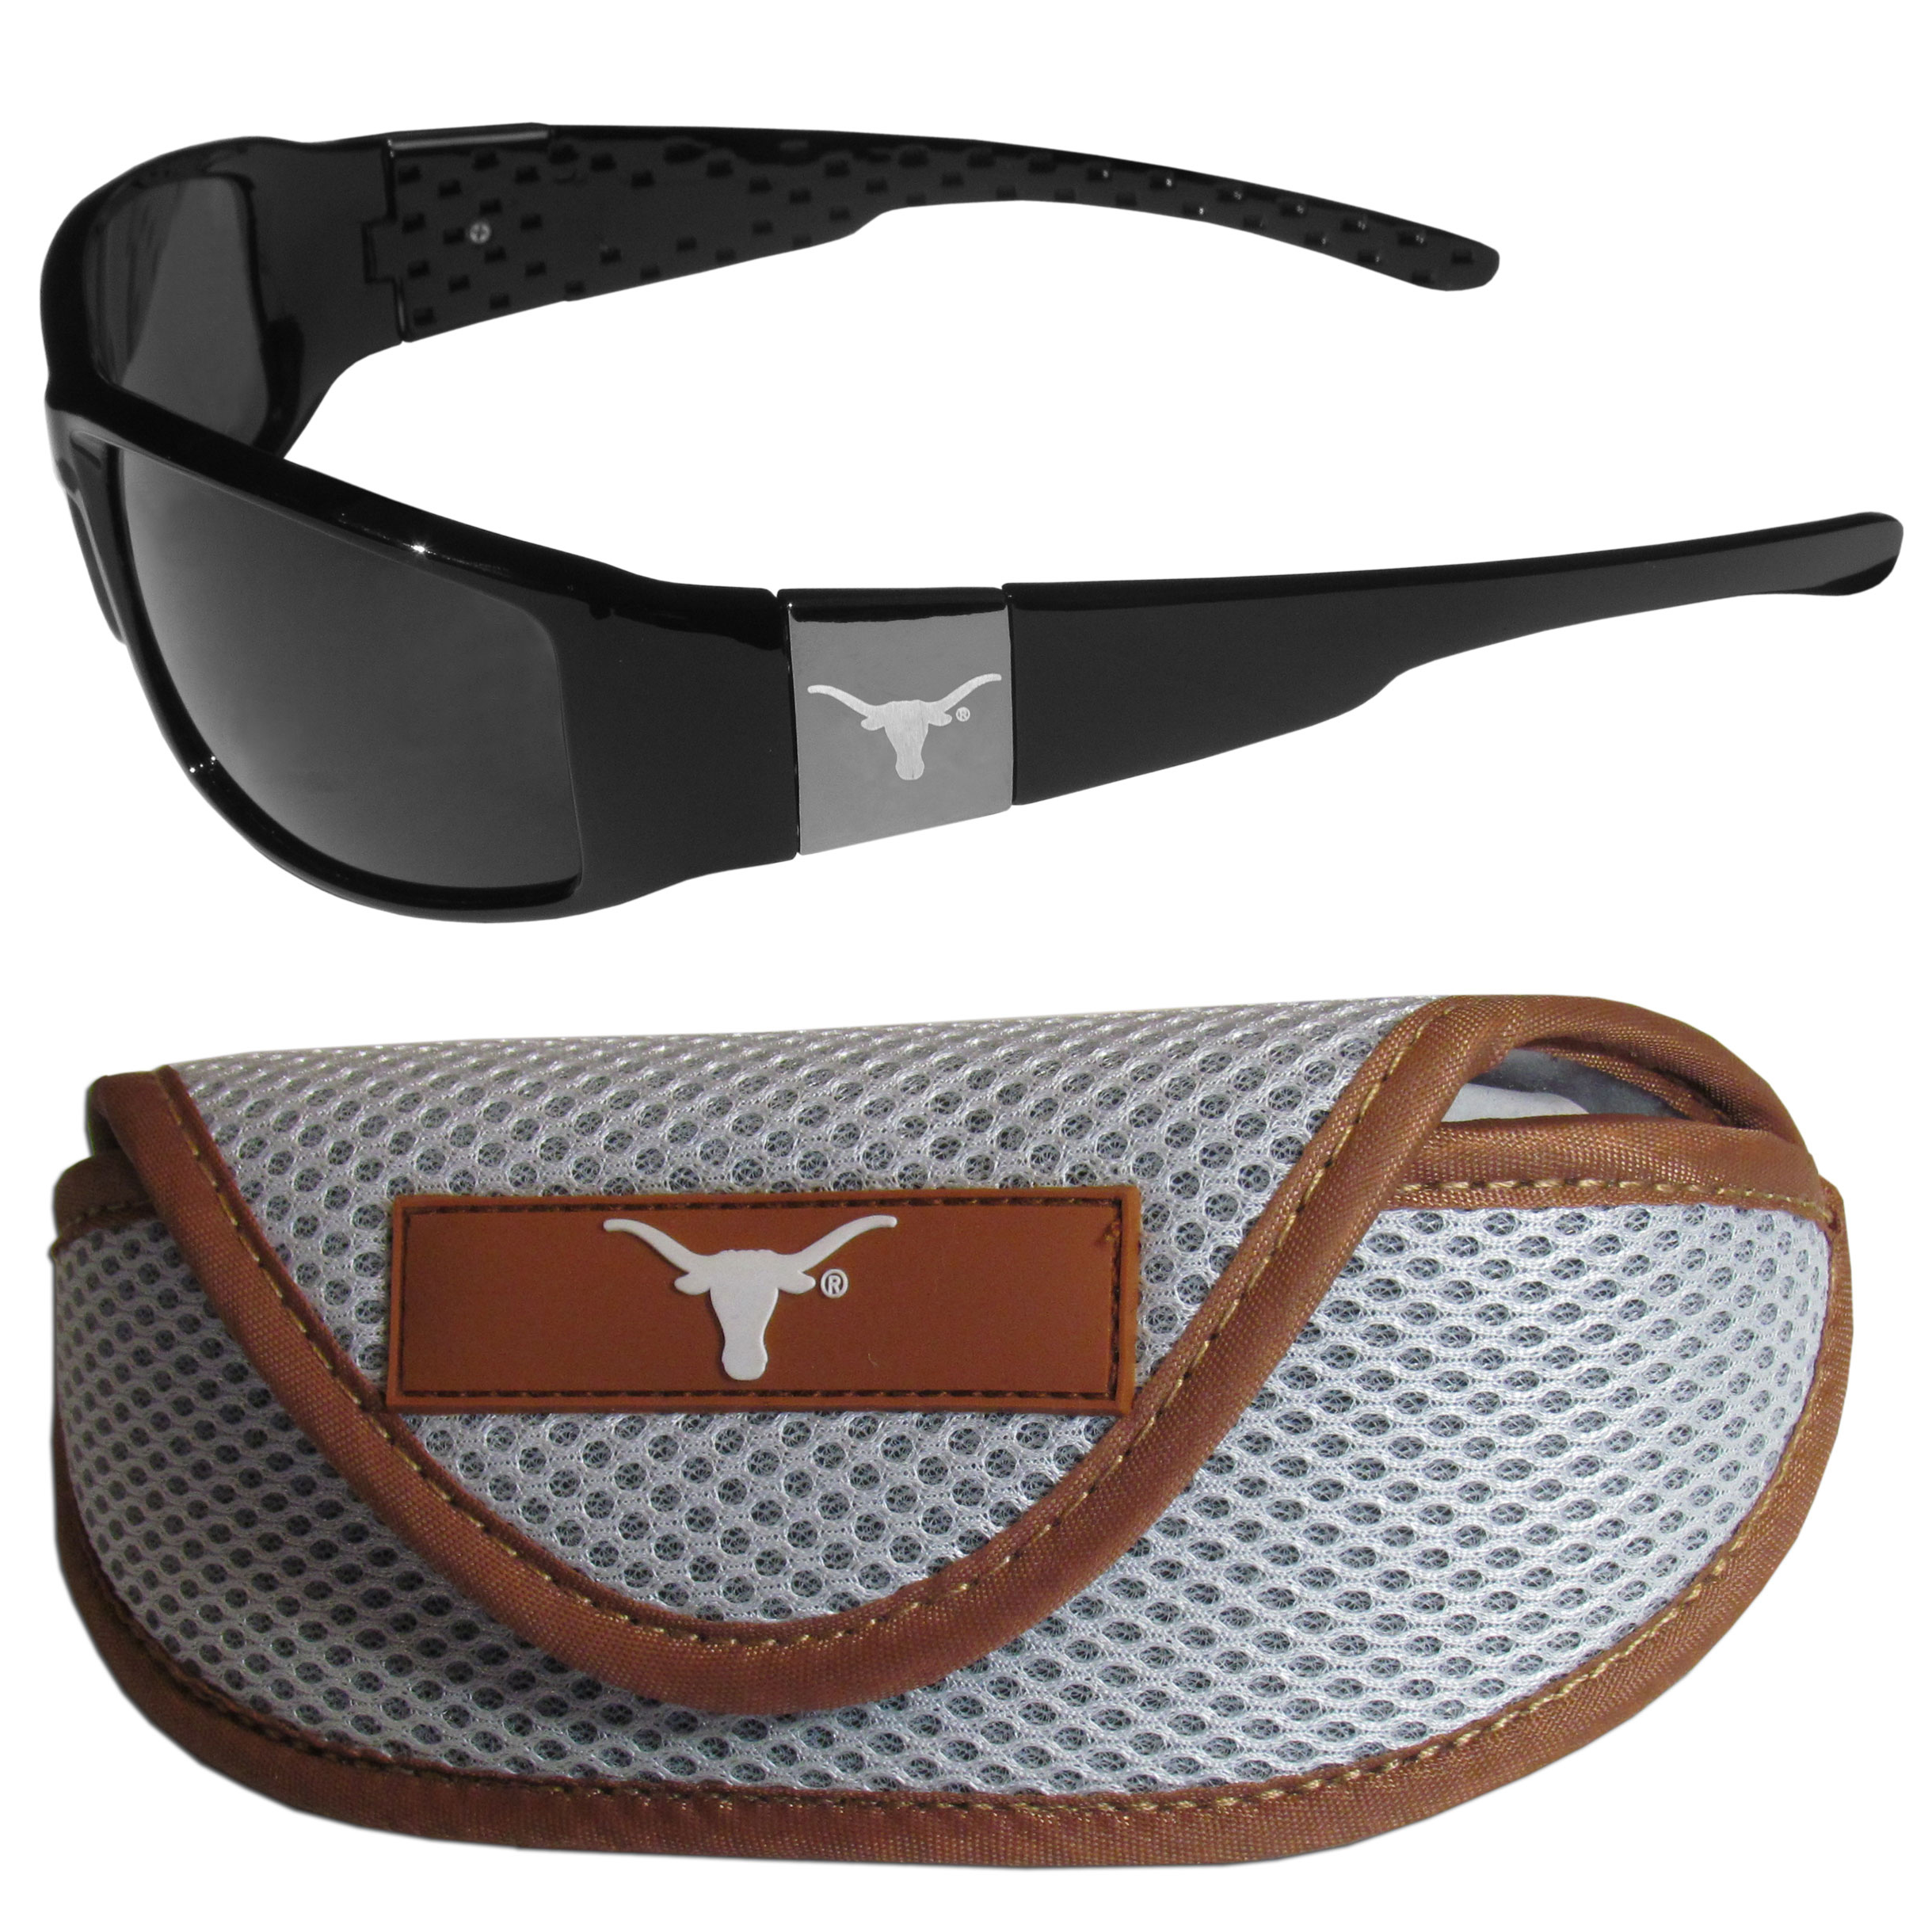 Texas Longhorns Chrome Wrap Sunglasses and Sport Carrying Case - These designer inspired frames have a sleek look in all black with high-polish chrome Texas Longhorns shields on each arm with an etched logo. The shades are perfect any outdoor activity like; golfing, driving, hiking, fishing or cheering on the team at a tailgating event or an at home game day BBQ with a lens rating of 100% UVA/UVB for maximum UV protection. The high-quality frames are as durable as they are fashionable and with their classic look they are perfect fan accessory that can be worn everyday for every occasion. The shades come with a zippered hard shell case to keep your sunglasses safe.